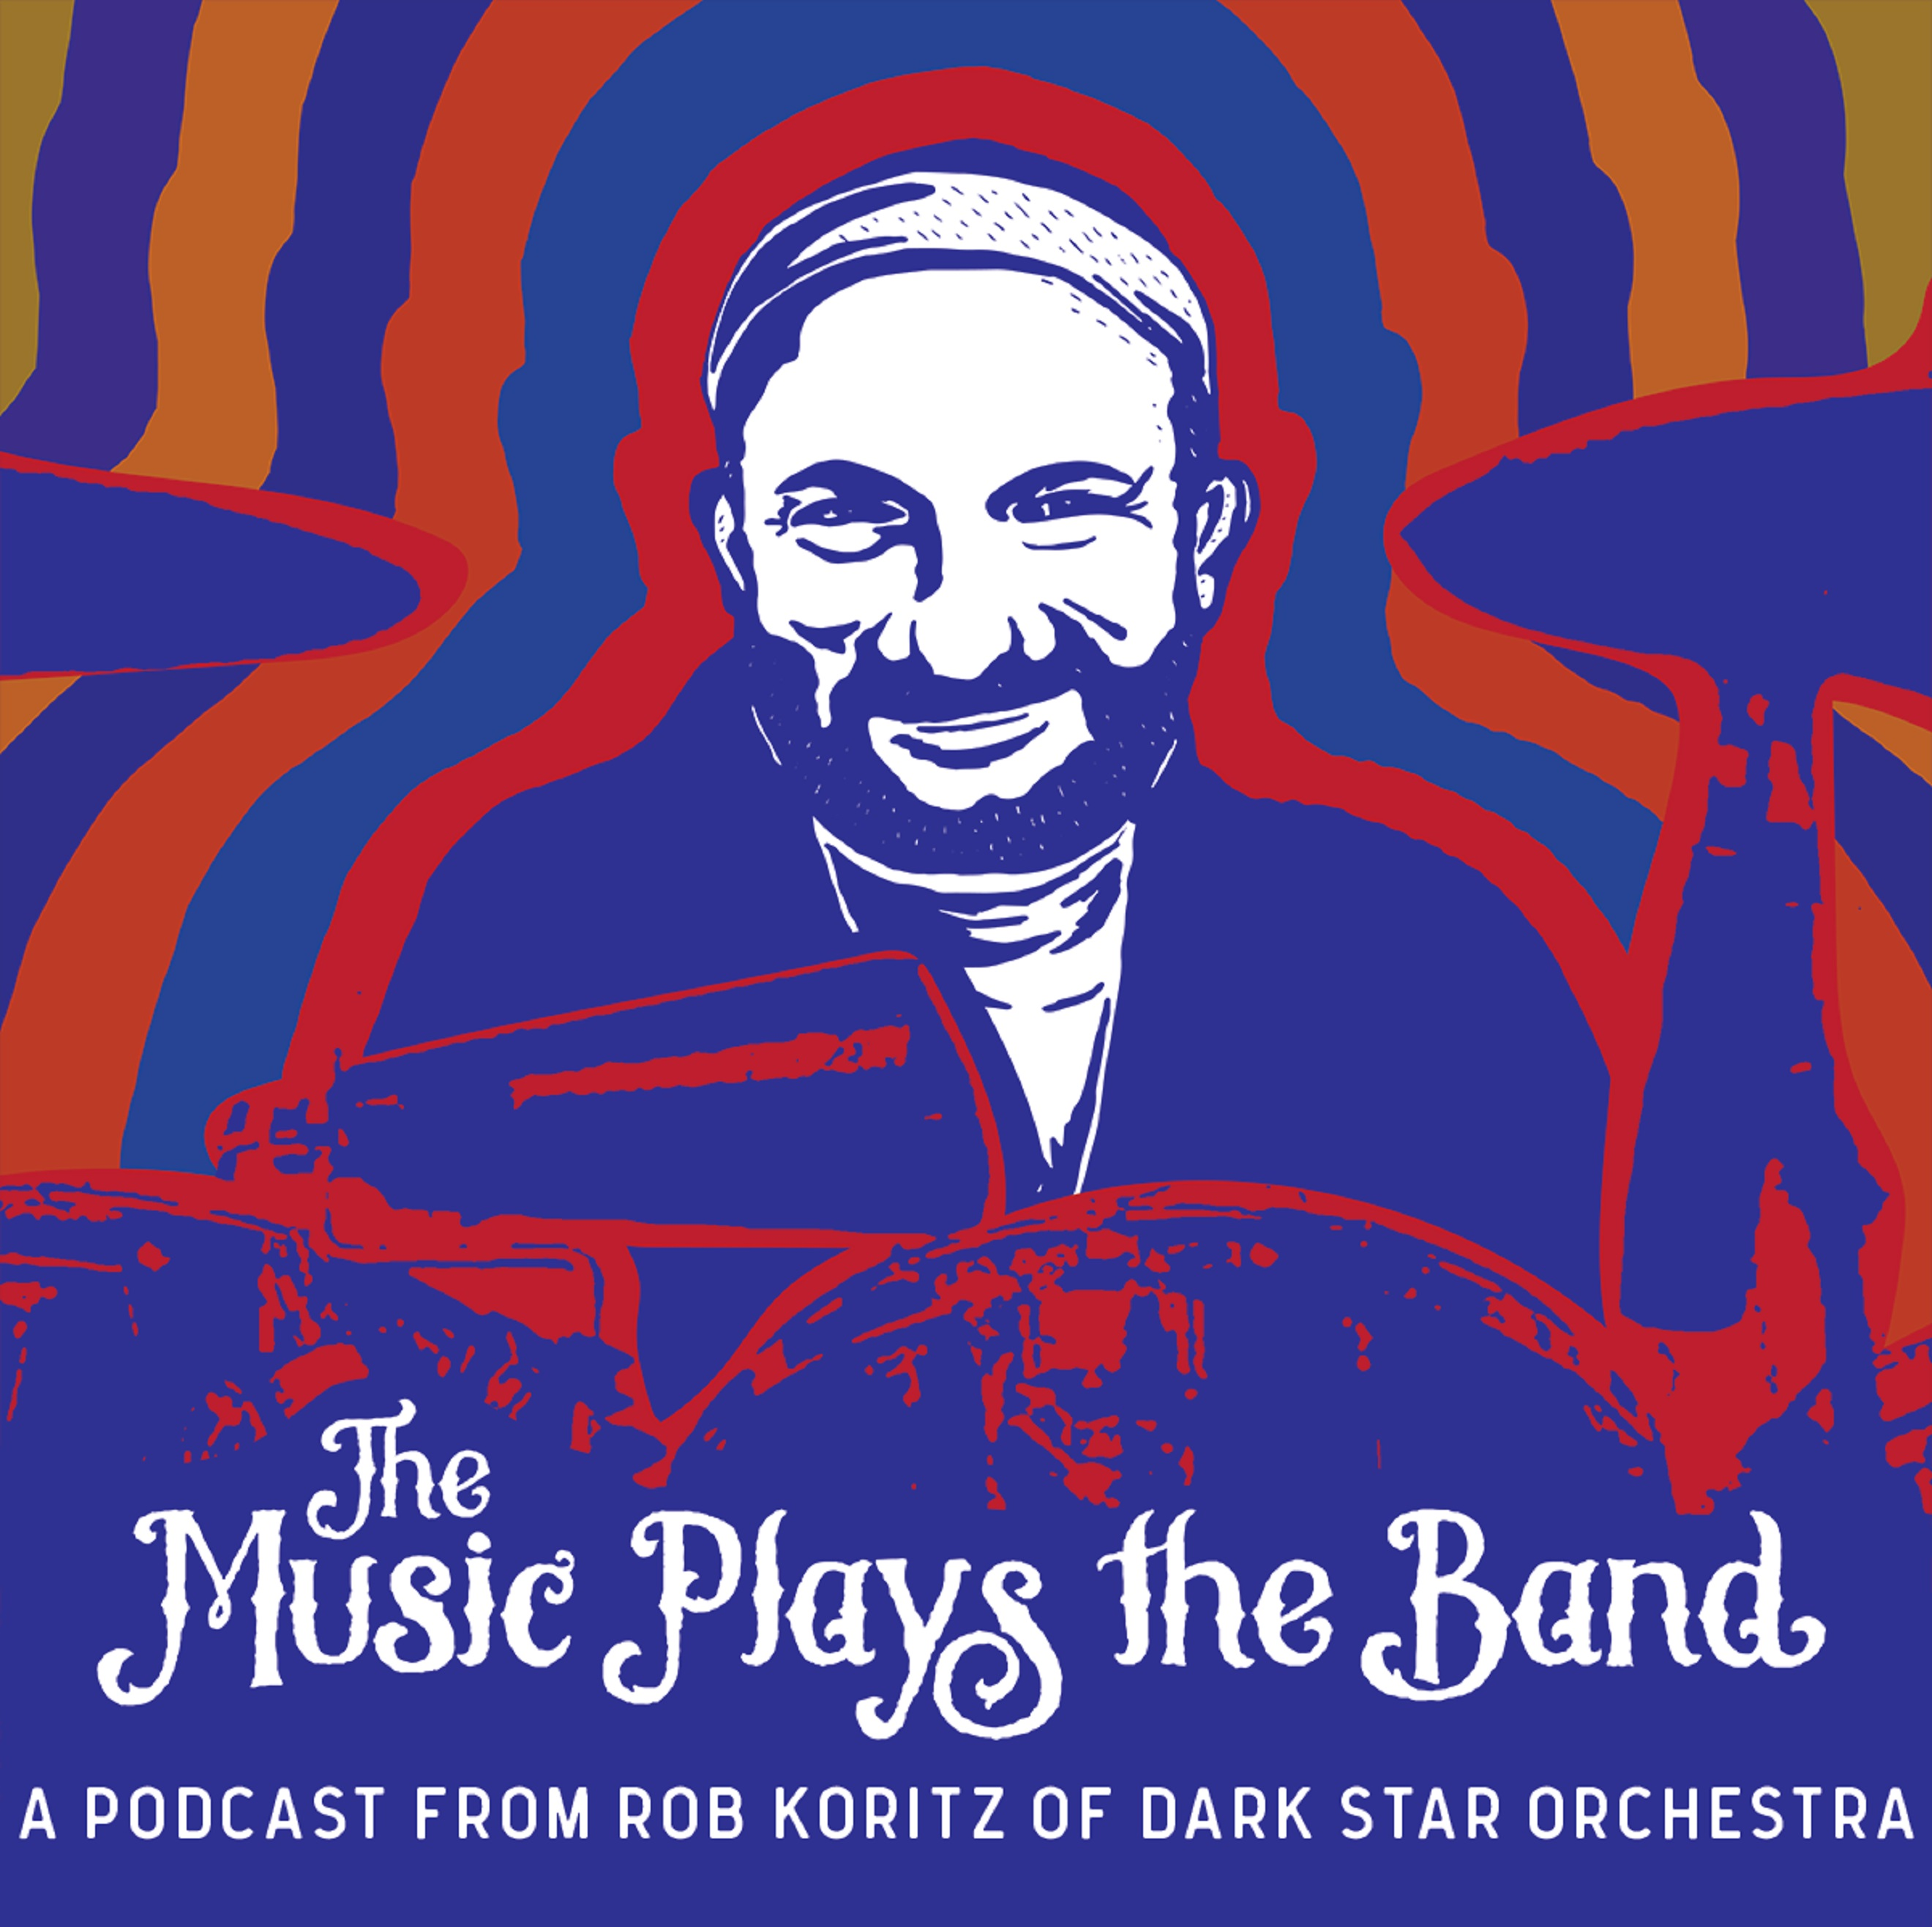 Dark Star Orchestra Drummer Rob Koritz Launches 'The Music Plays the Band' Podcast